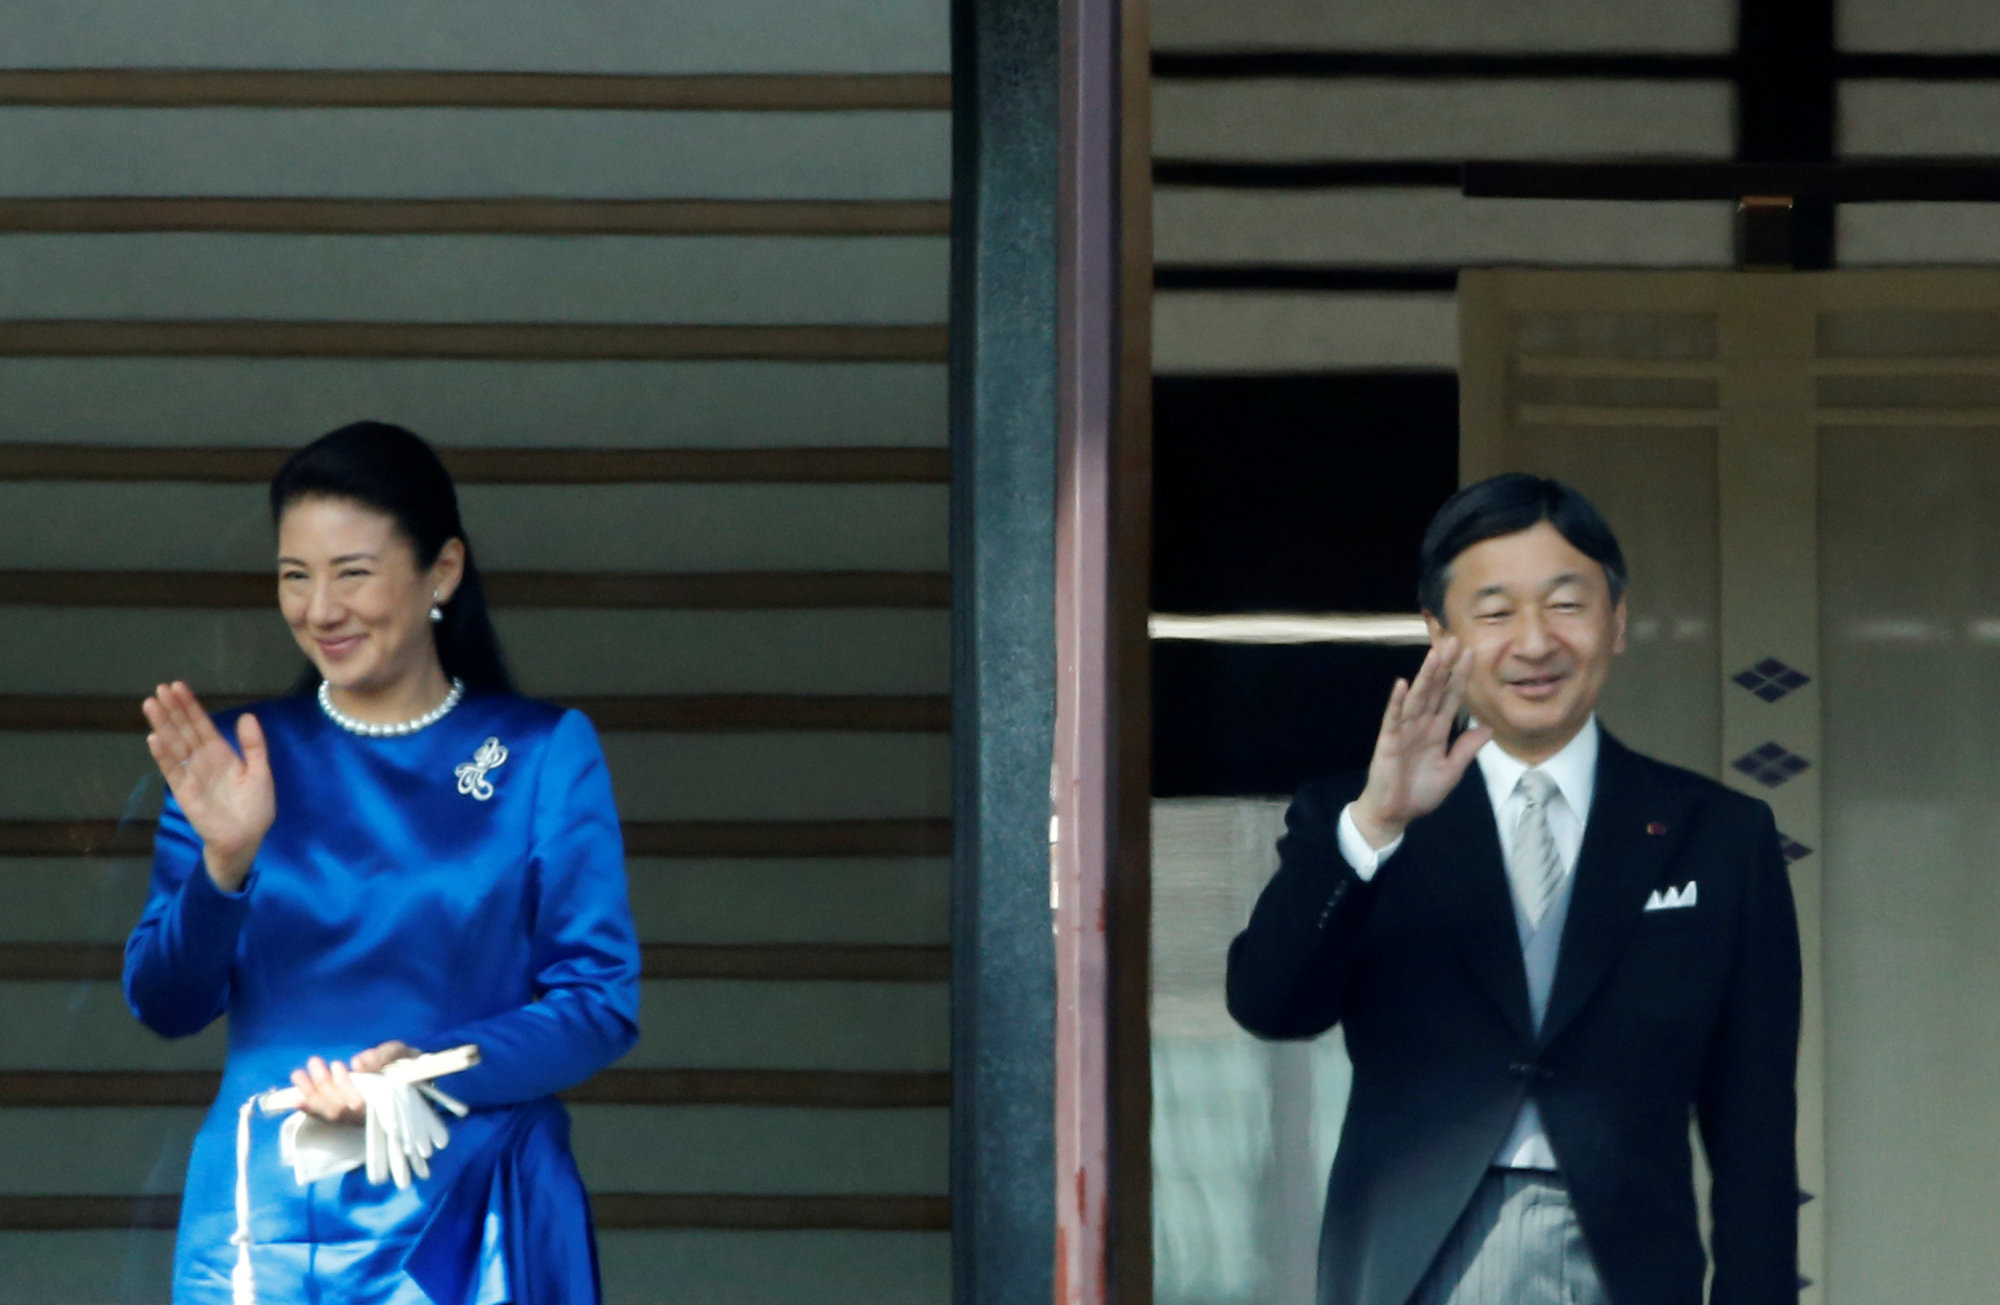 Crown Prince Naruhito and Crown Princess Masako greet onlookers during a New Year celebration at the Imperial Palace in Tokyo on Monday. | REUTERS